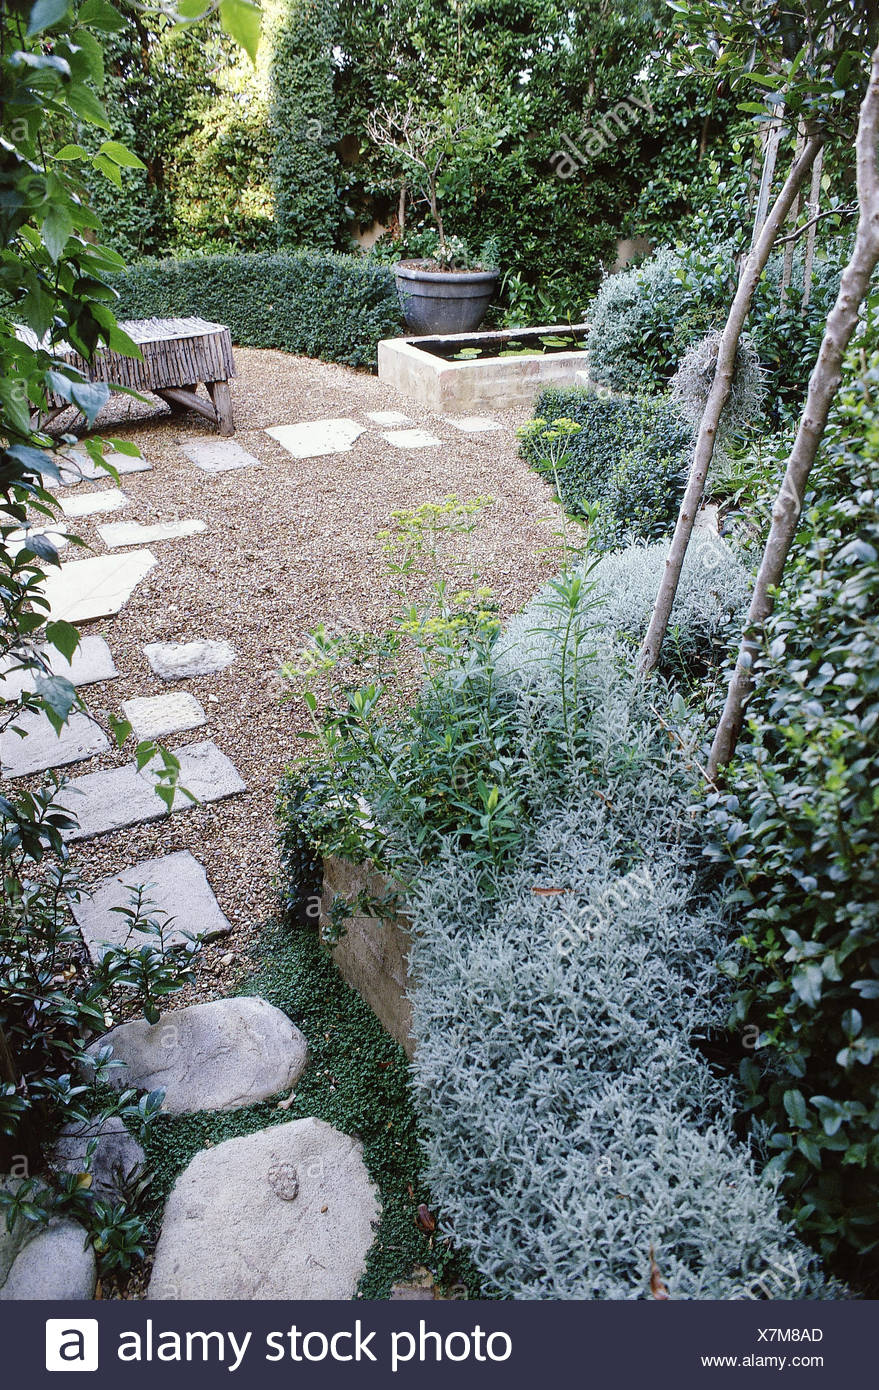 Small Gardens Garden Shaped Hedges, Small Trees, Green Bushes And Plants In  Raised Flowerbed Round Edge Of Gravel Area Paving